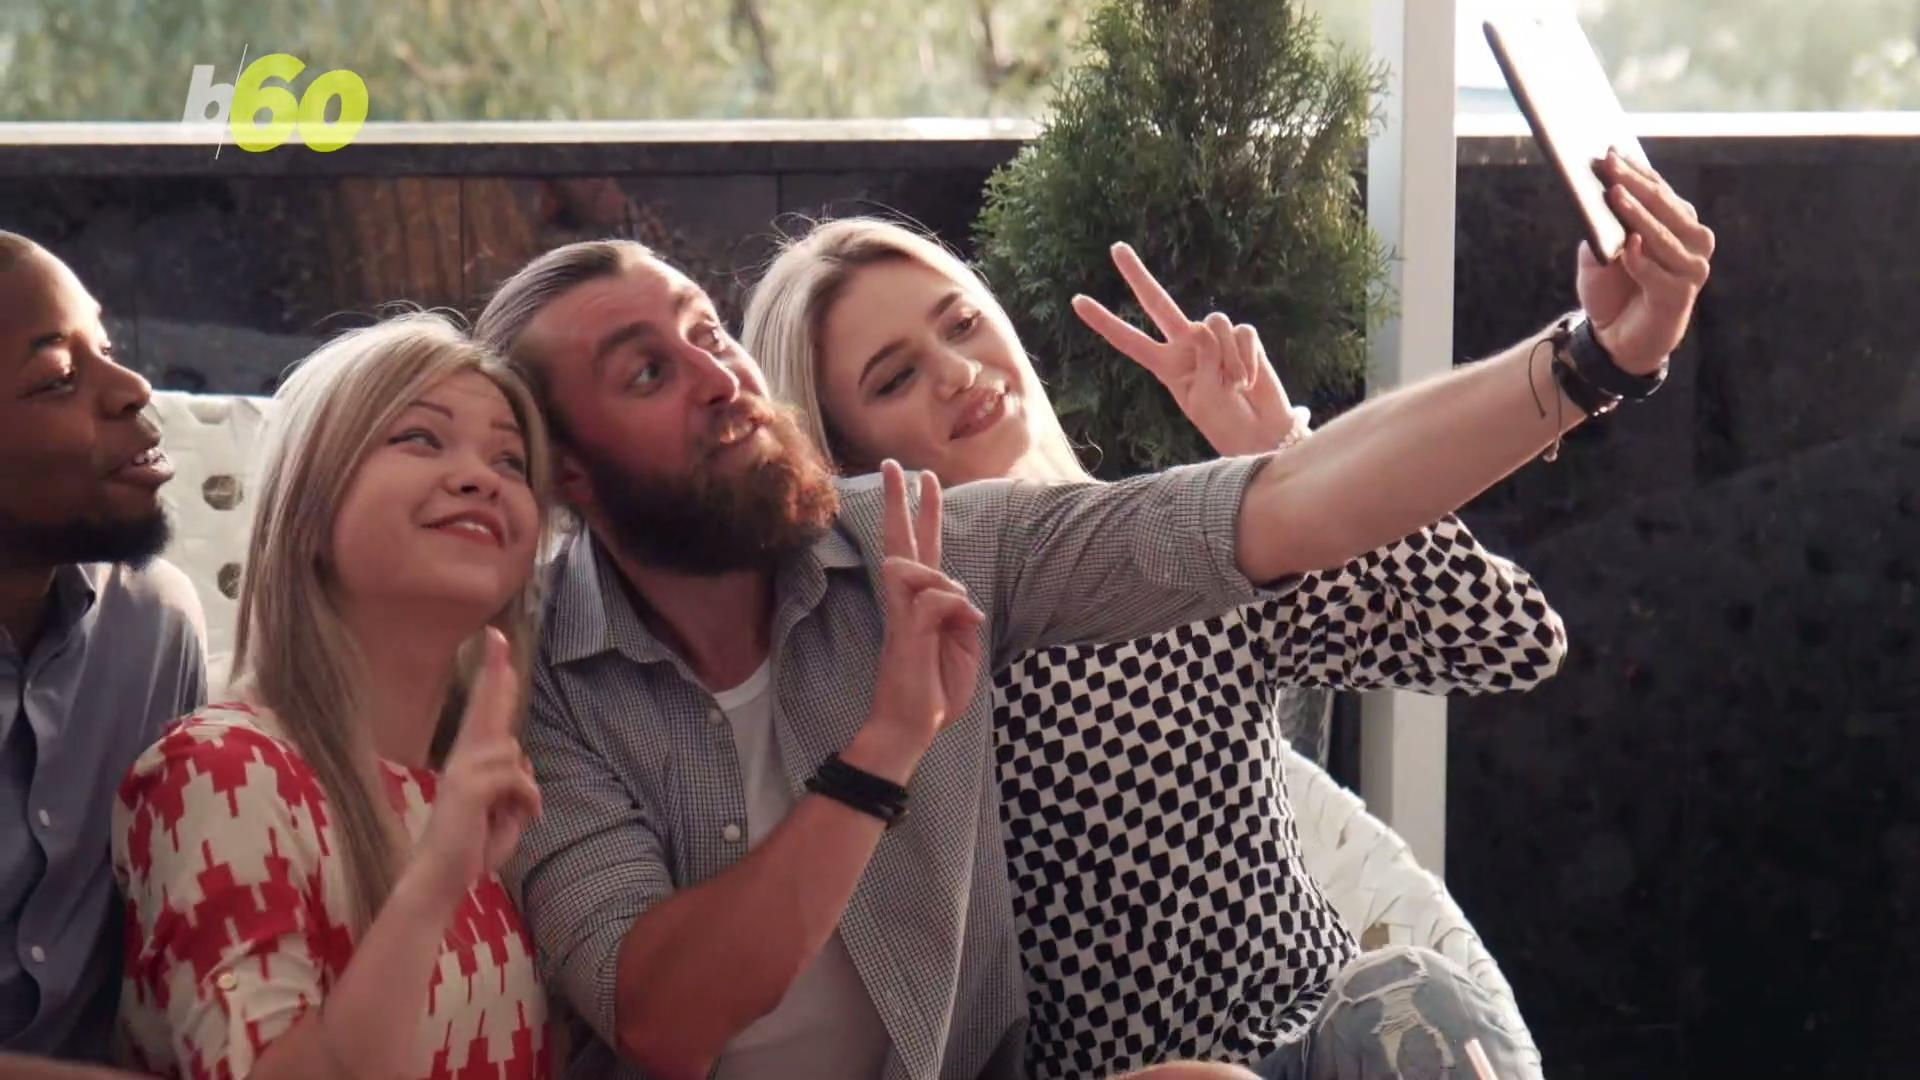 Millennials Are Expected To Take Over 25,000 Selfies in a Lifetime